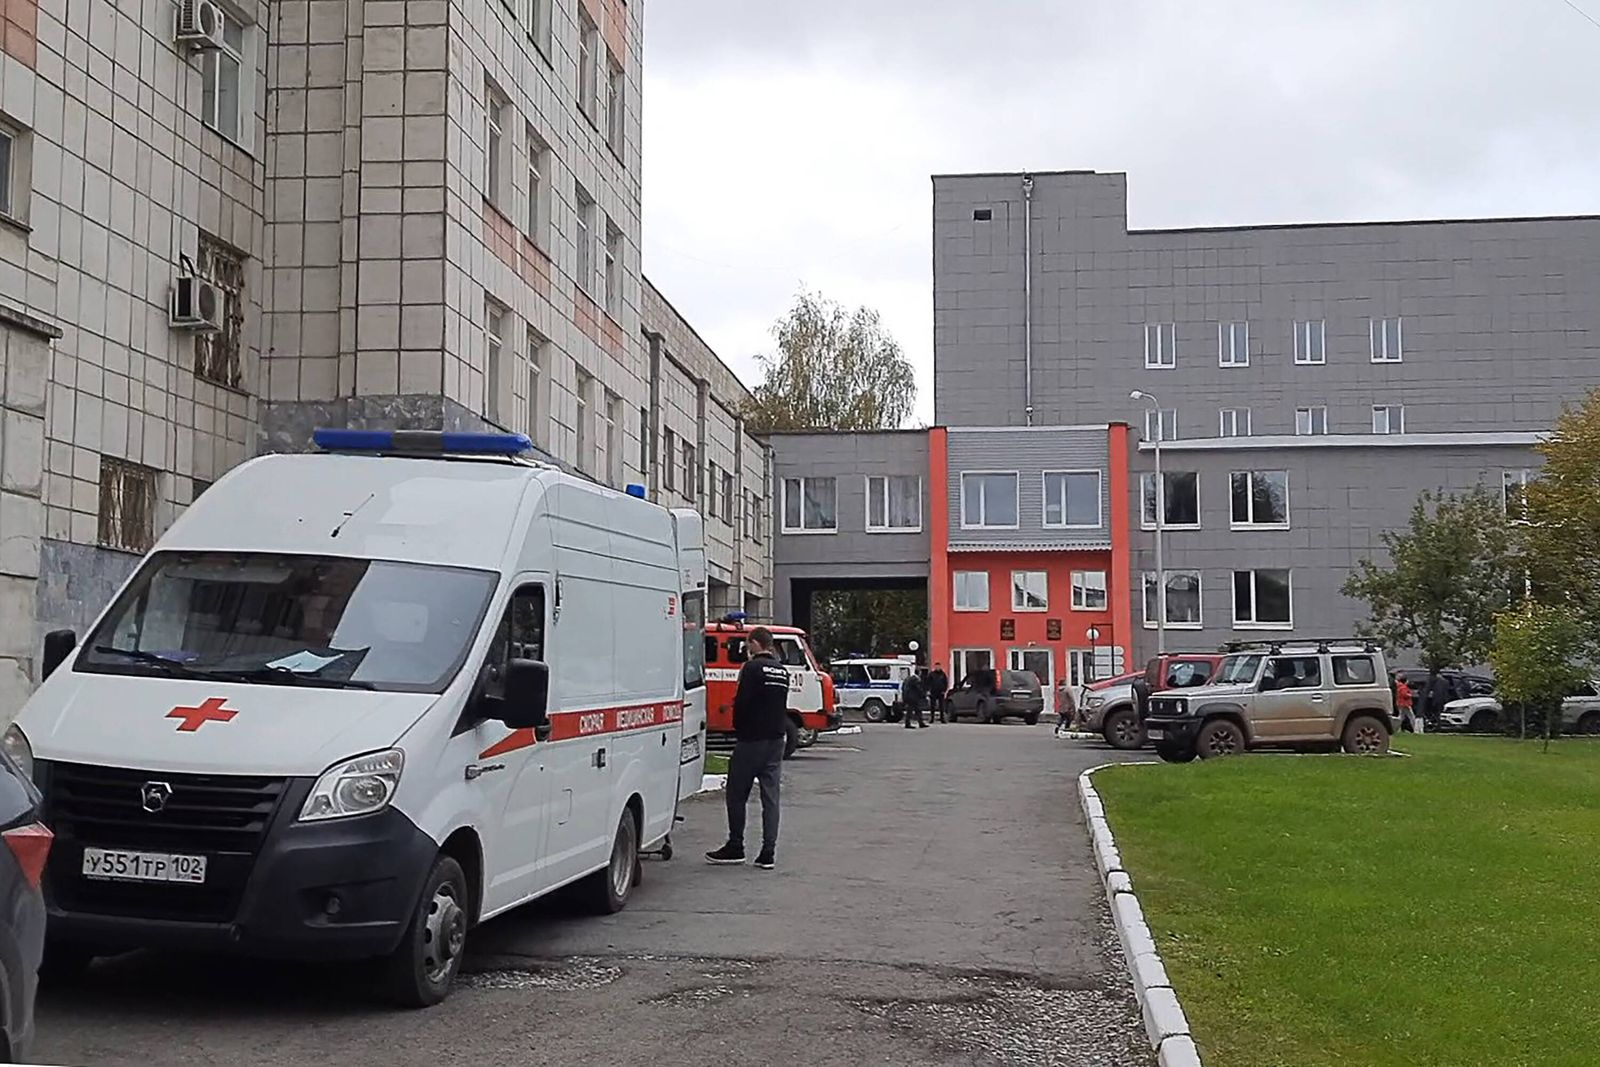 PERM, RUSSIA - SEPTEMBER 20, 2021: An ambulance vehicle is pictured at the Perm State University in Genkelya Street wher